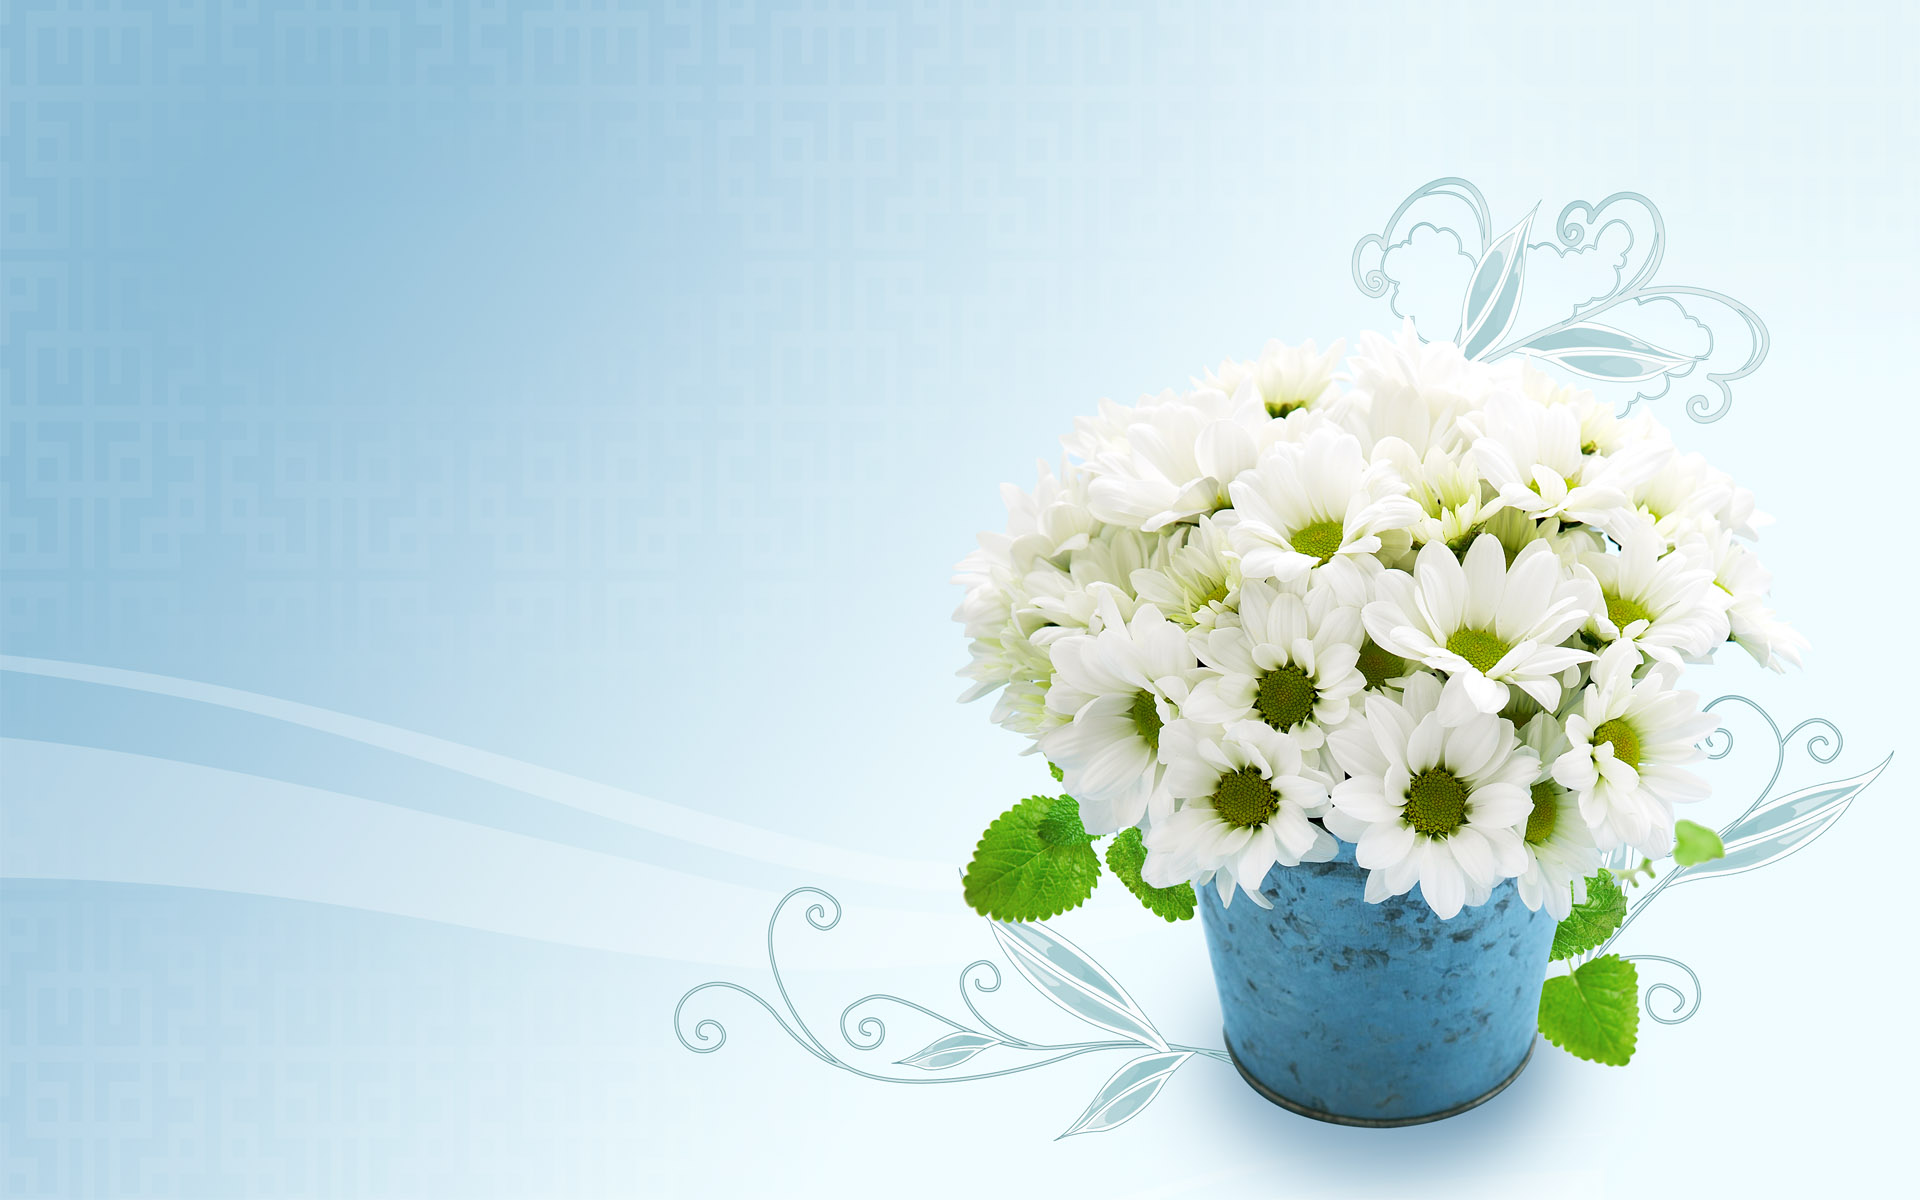 White Flowers Hd Wallpapers 6 Desktop Background ...